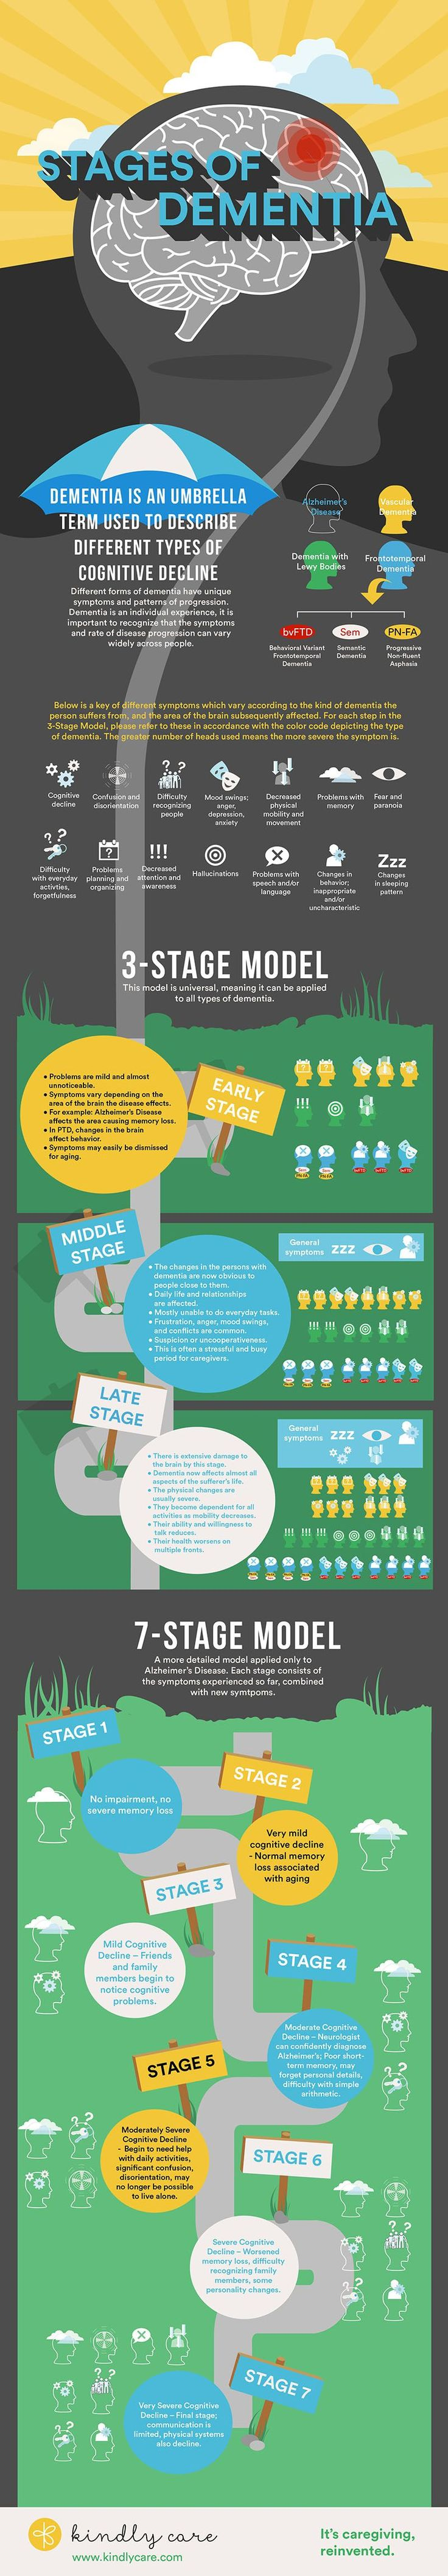 "Below are instructions on how to share the infographic associated with this article: Stages of Dementia: The 3-Stage and the 7-Stage Models Share this infographic on your social media: Share this infographic on your site: <p>Please include attribution to <a href=""https://www.kindlycare.com/"">https://www.kindlycare.com/</a> with this infographic.</p><p><a href=""https://www.kindlycare.com..."